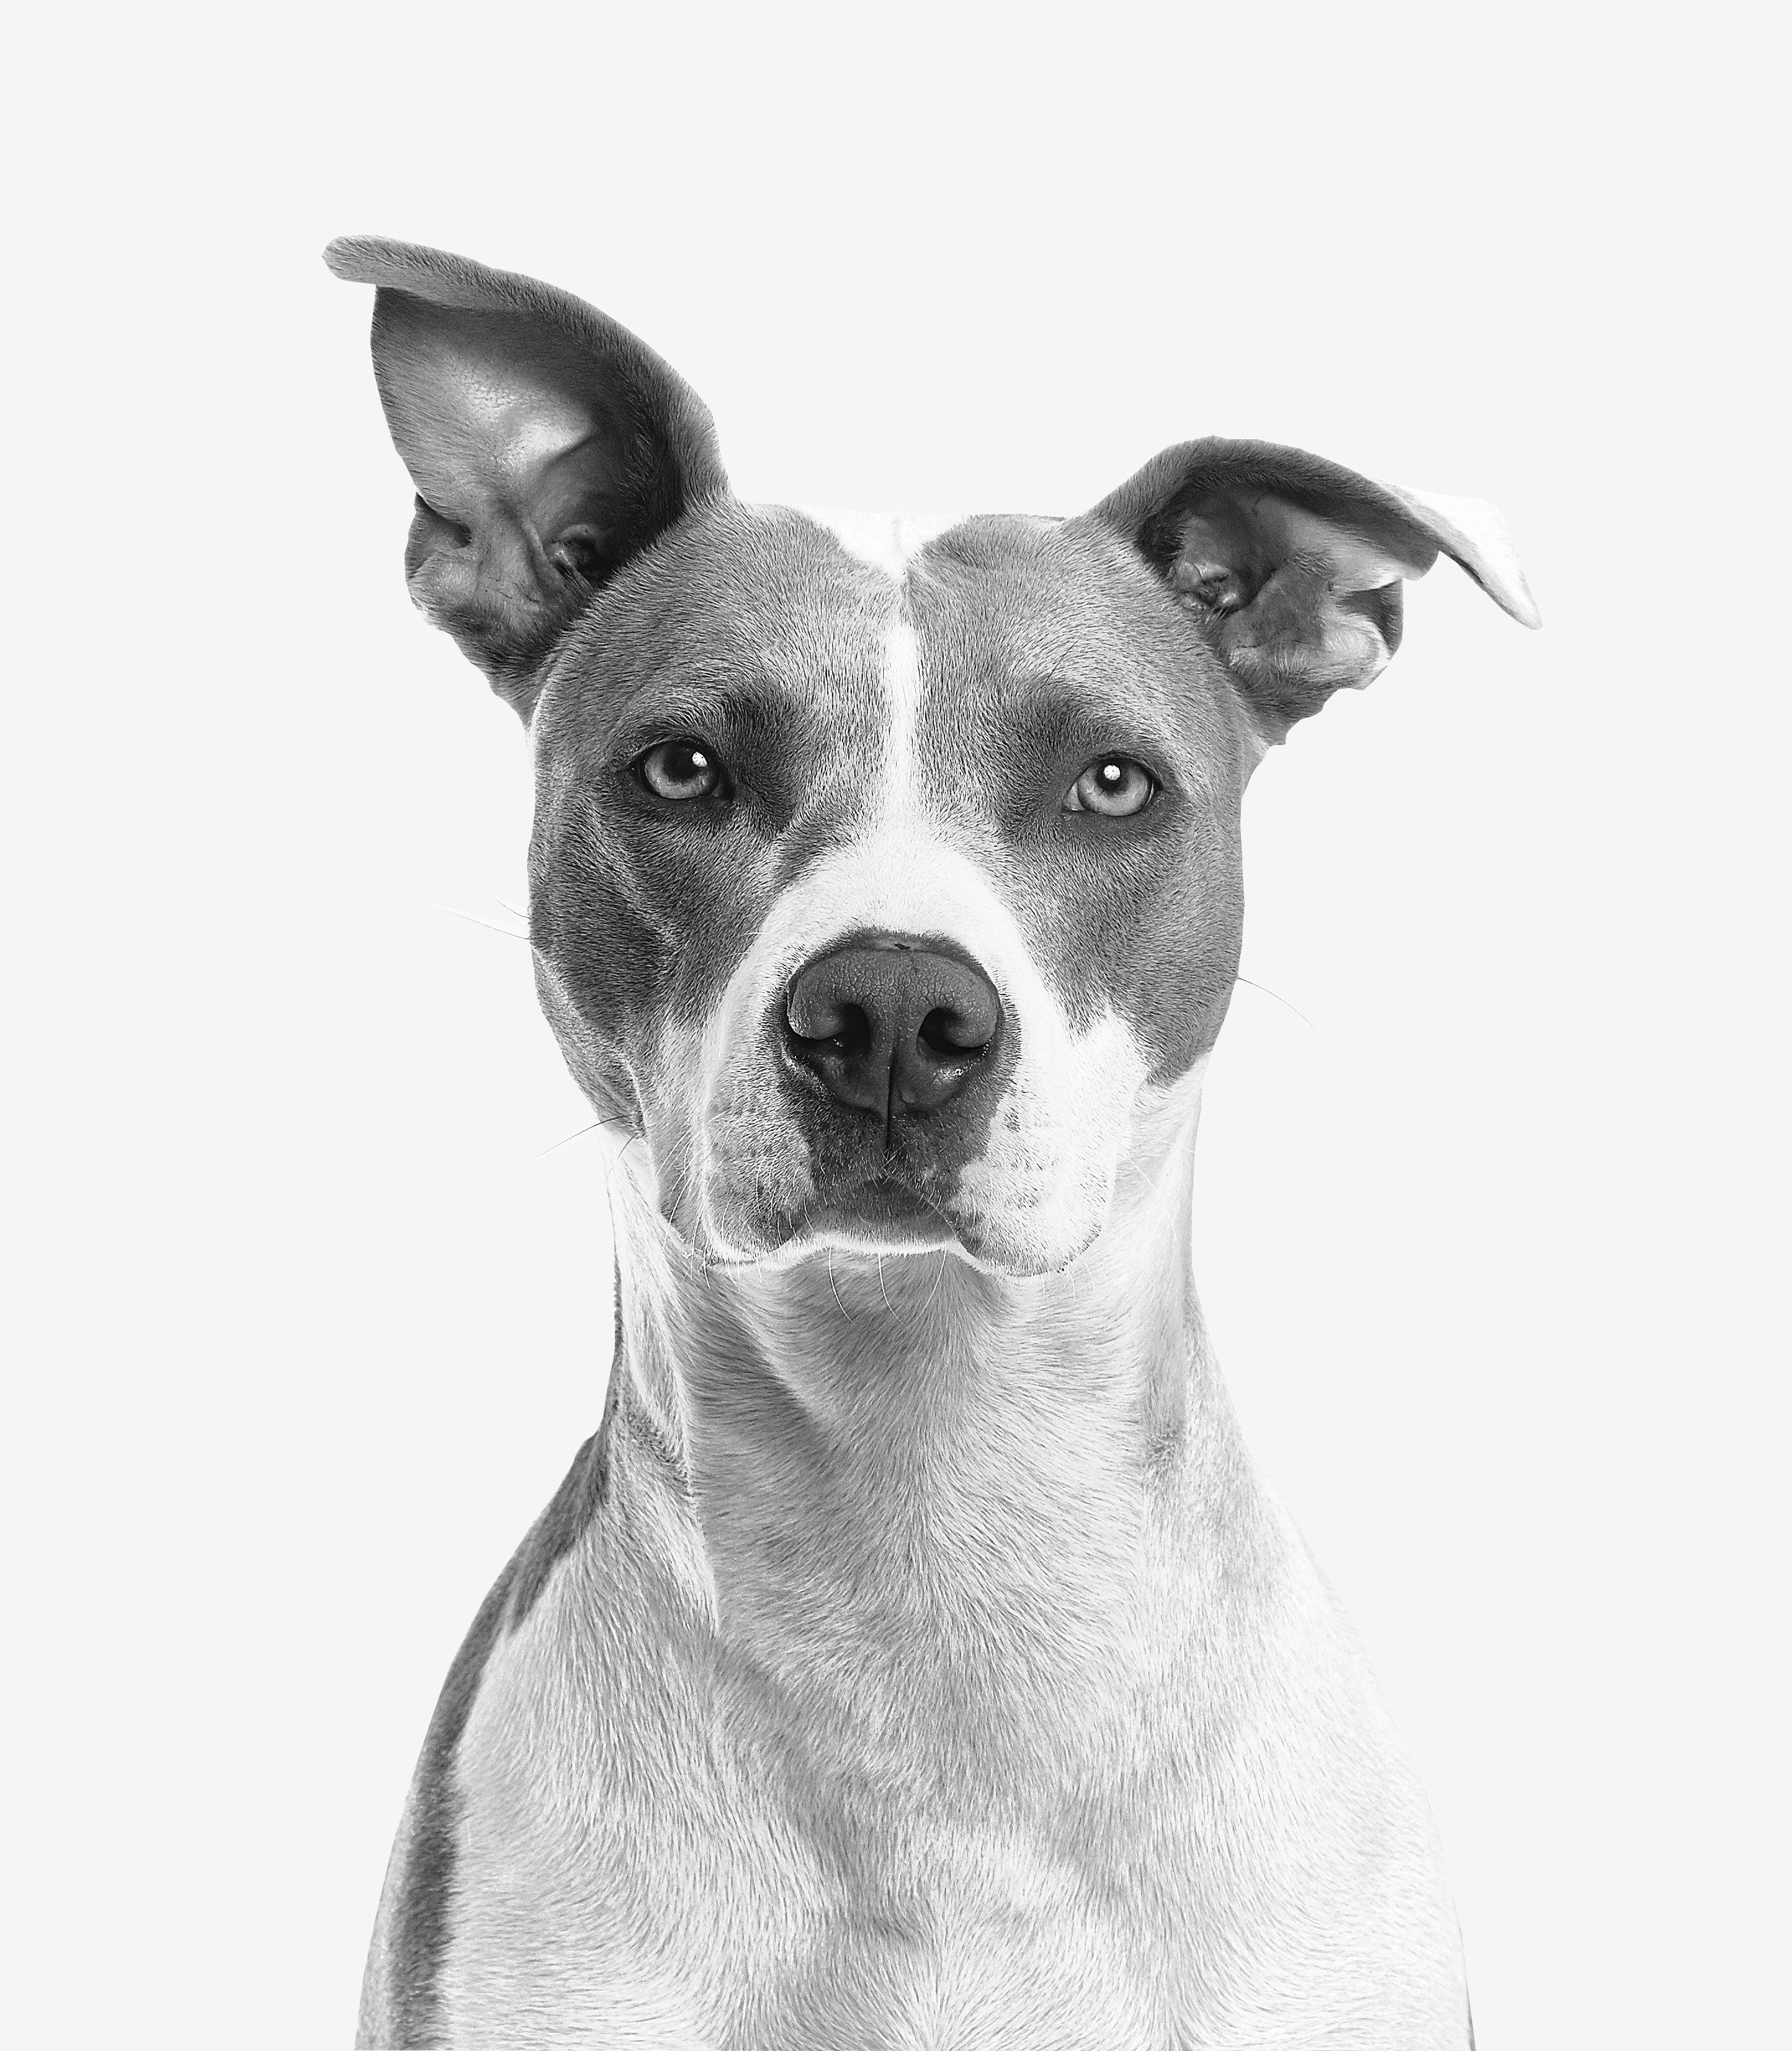 free photo closeup photo of short coated white and gray dog